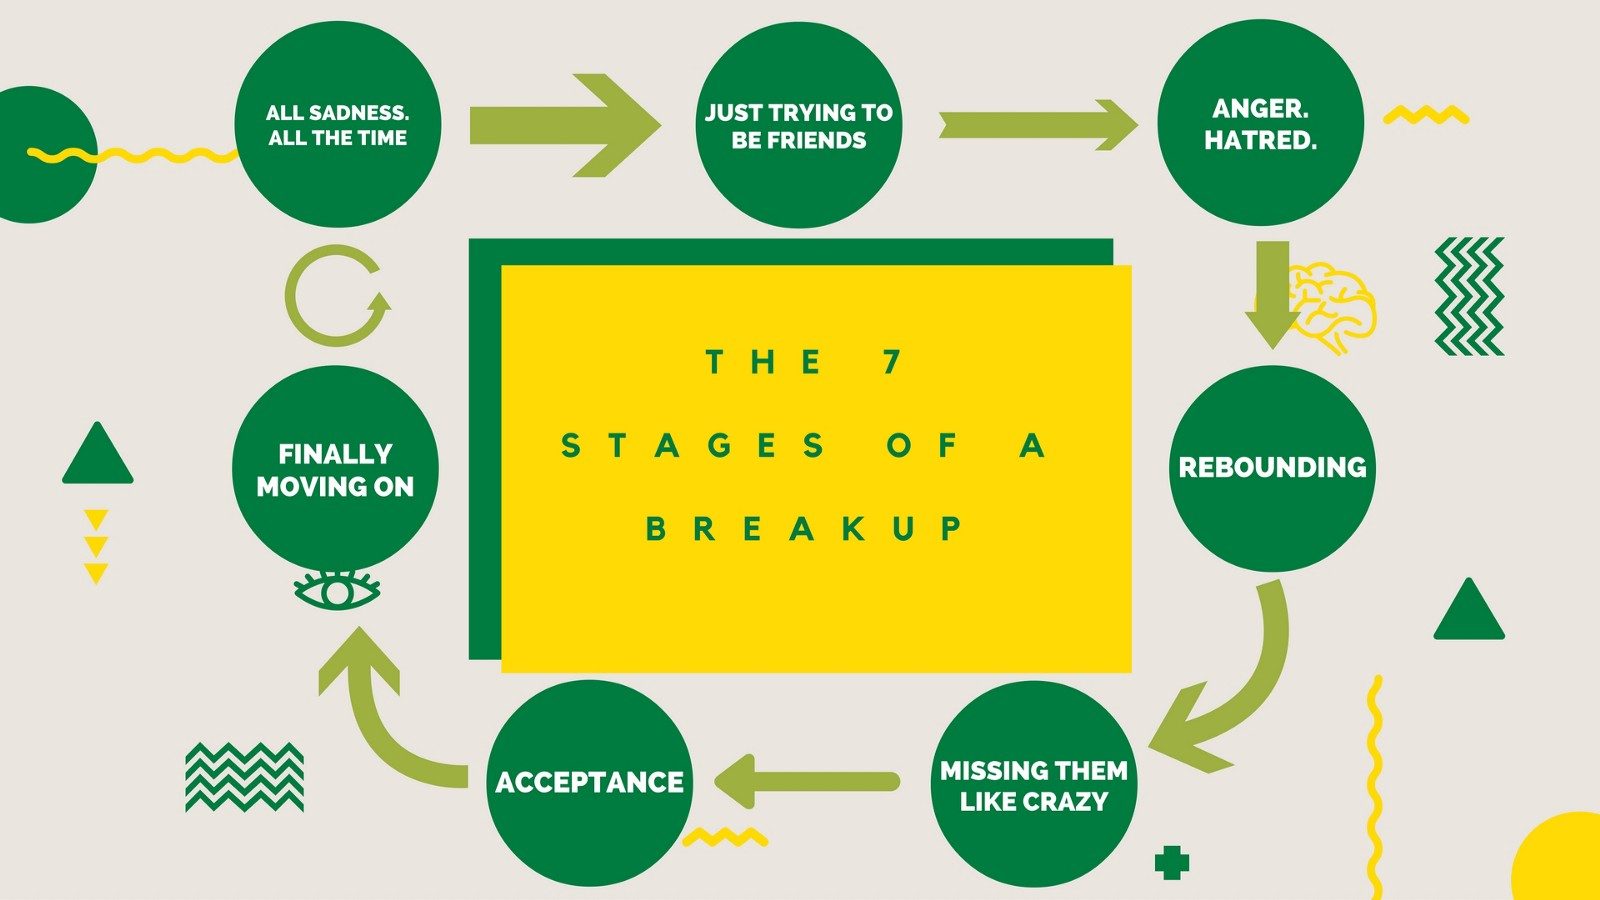 Stages of emotions after a break up